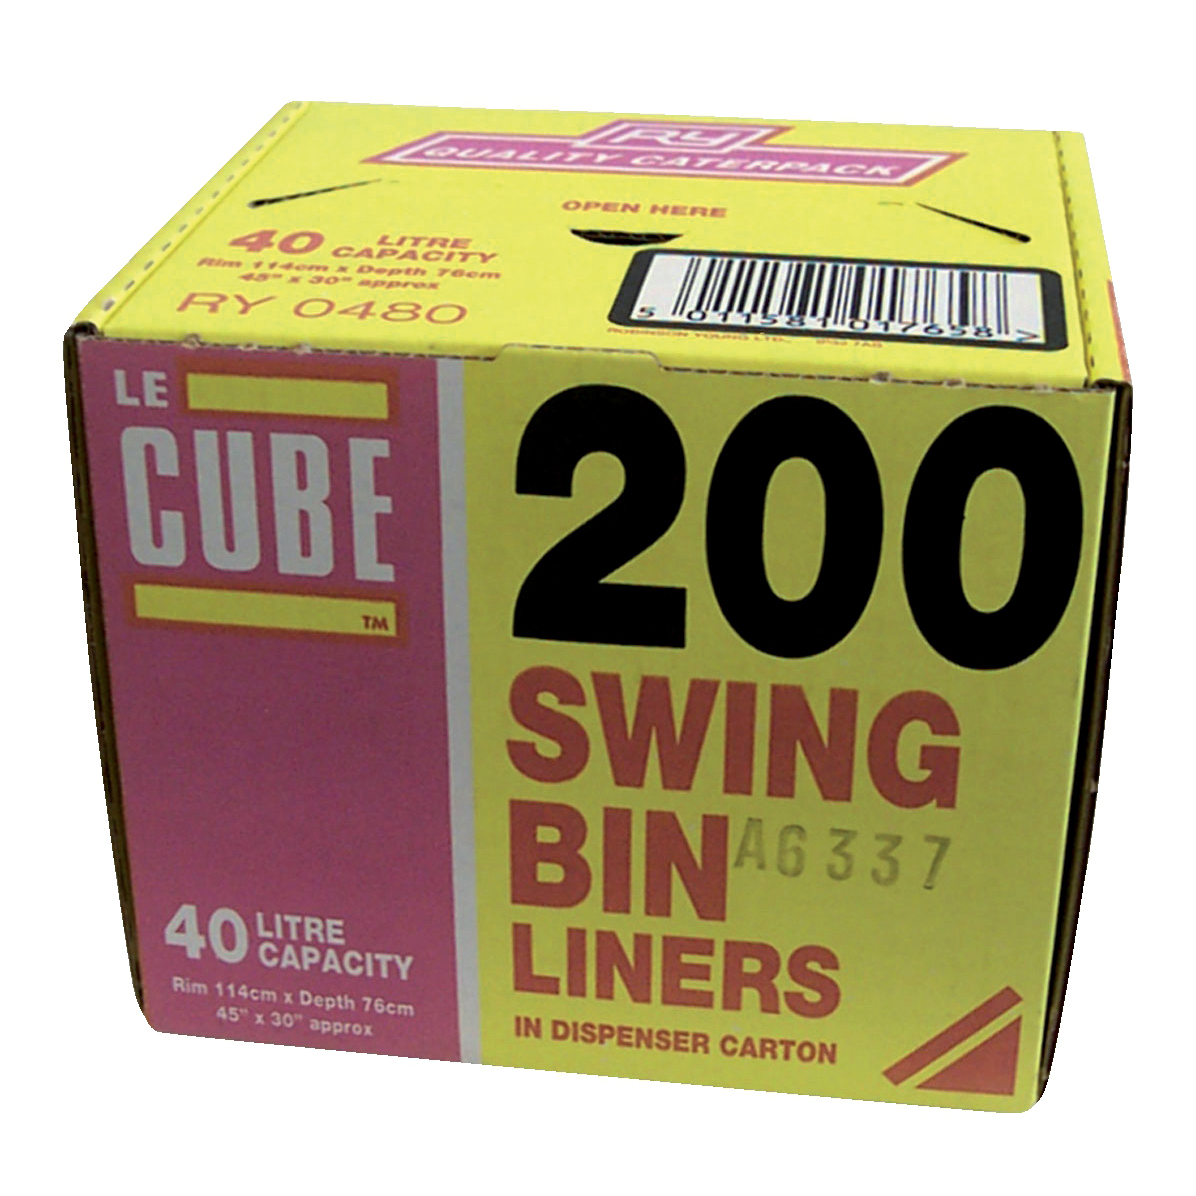 Bin Bags & Liners Le Cube Swing Bin Liners in Dispenser Box 46 Litre Capacity 1140x570mm Ref 480 Pack 200